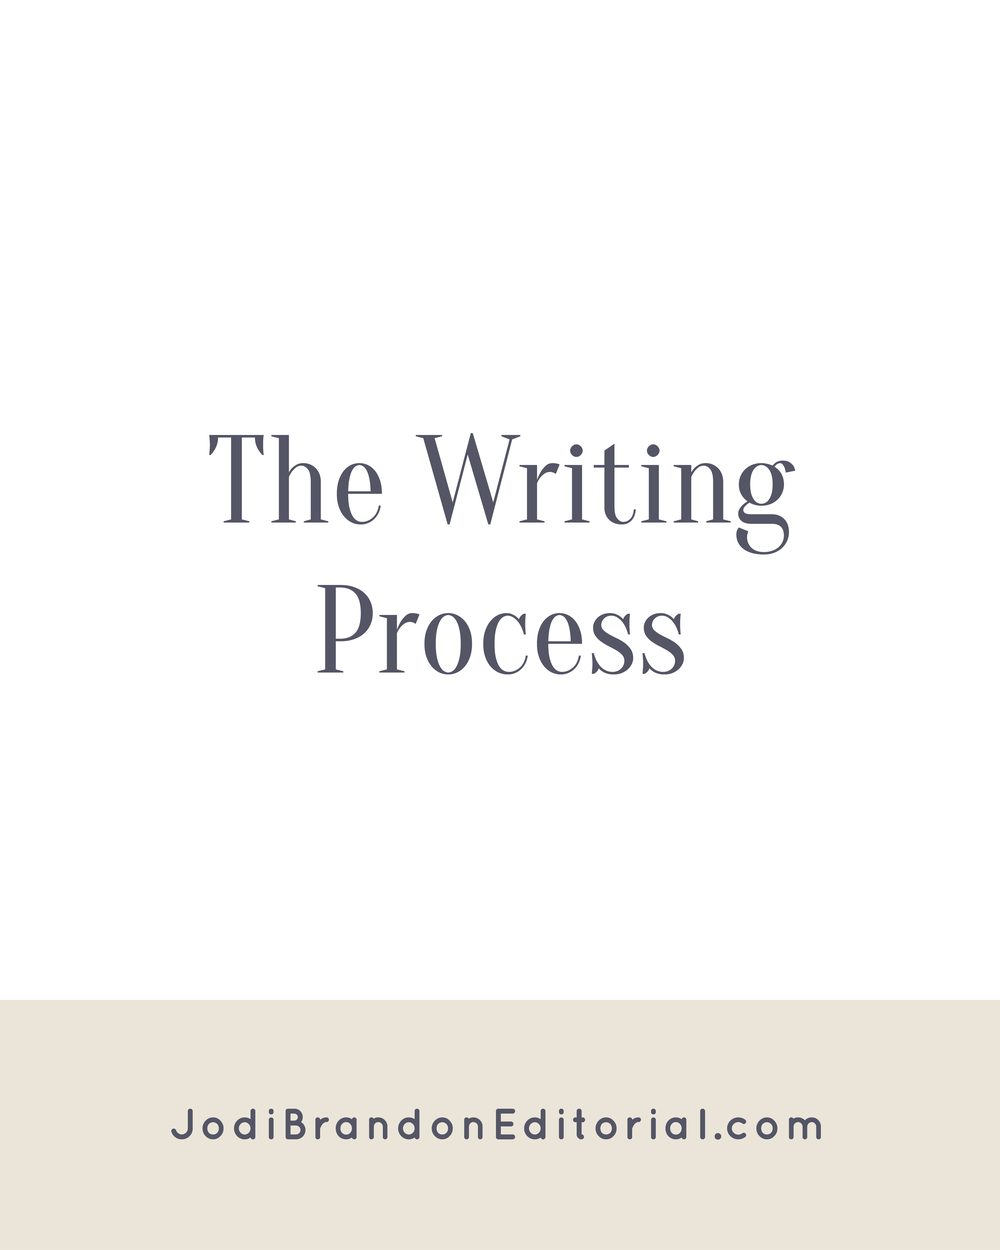 Sometimes you'll see the writing process as having four steps: writing, revising, editing, and publishing. In that scenario, prewriting is included in the writing phase. Prewriting is a separate step from writing. I cannot over-emphasize that point! If you sit down to write 50,000 (or more words) with a topic and a few key points, but nothing else, you're in trouble. Prewriting is the legwork and preparation to make the actual writing easier and faster. So really, the writing process has 5 steps.  |  Jodi Brandon Editorial